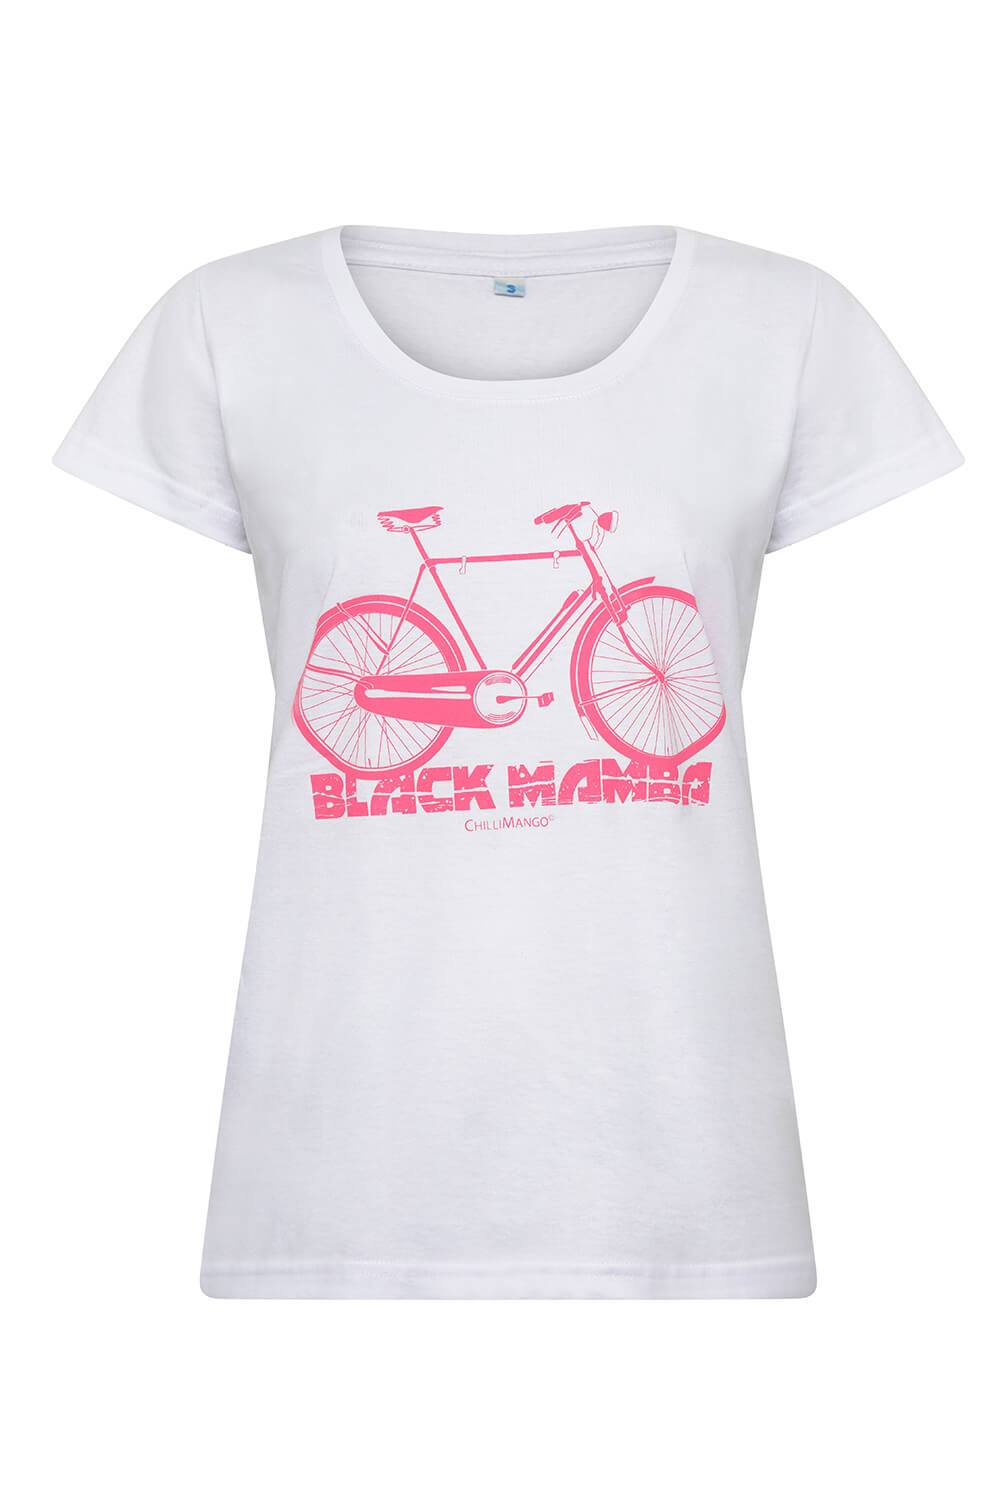 women's white cotton t-shirt with pink bicycle